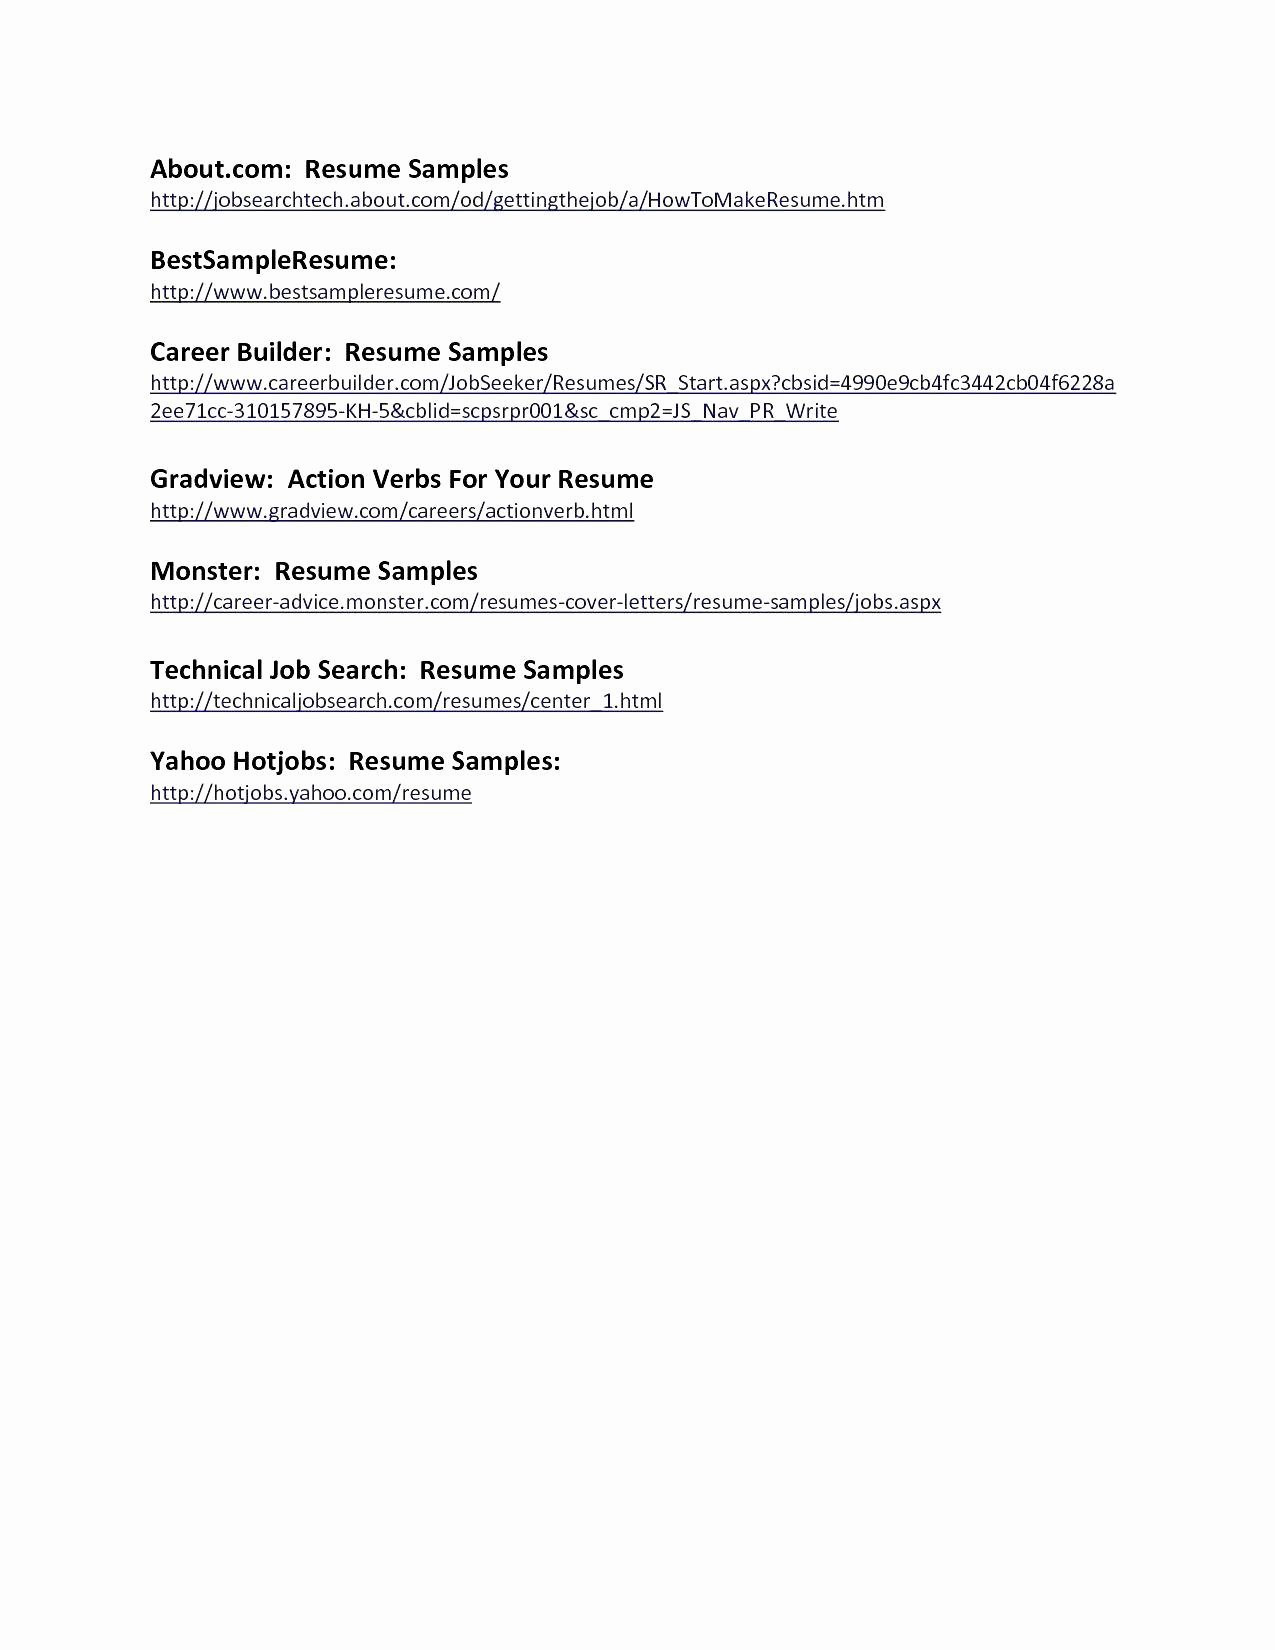 Dental assistant Resume Examples - Dental assistant Resume T Inspirationa 33 Ideal Dental assistant